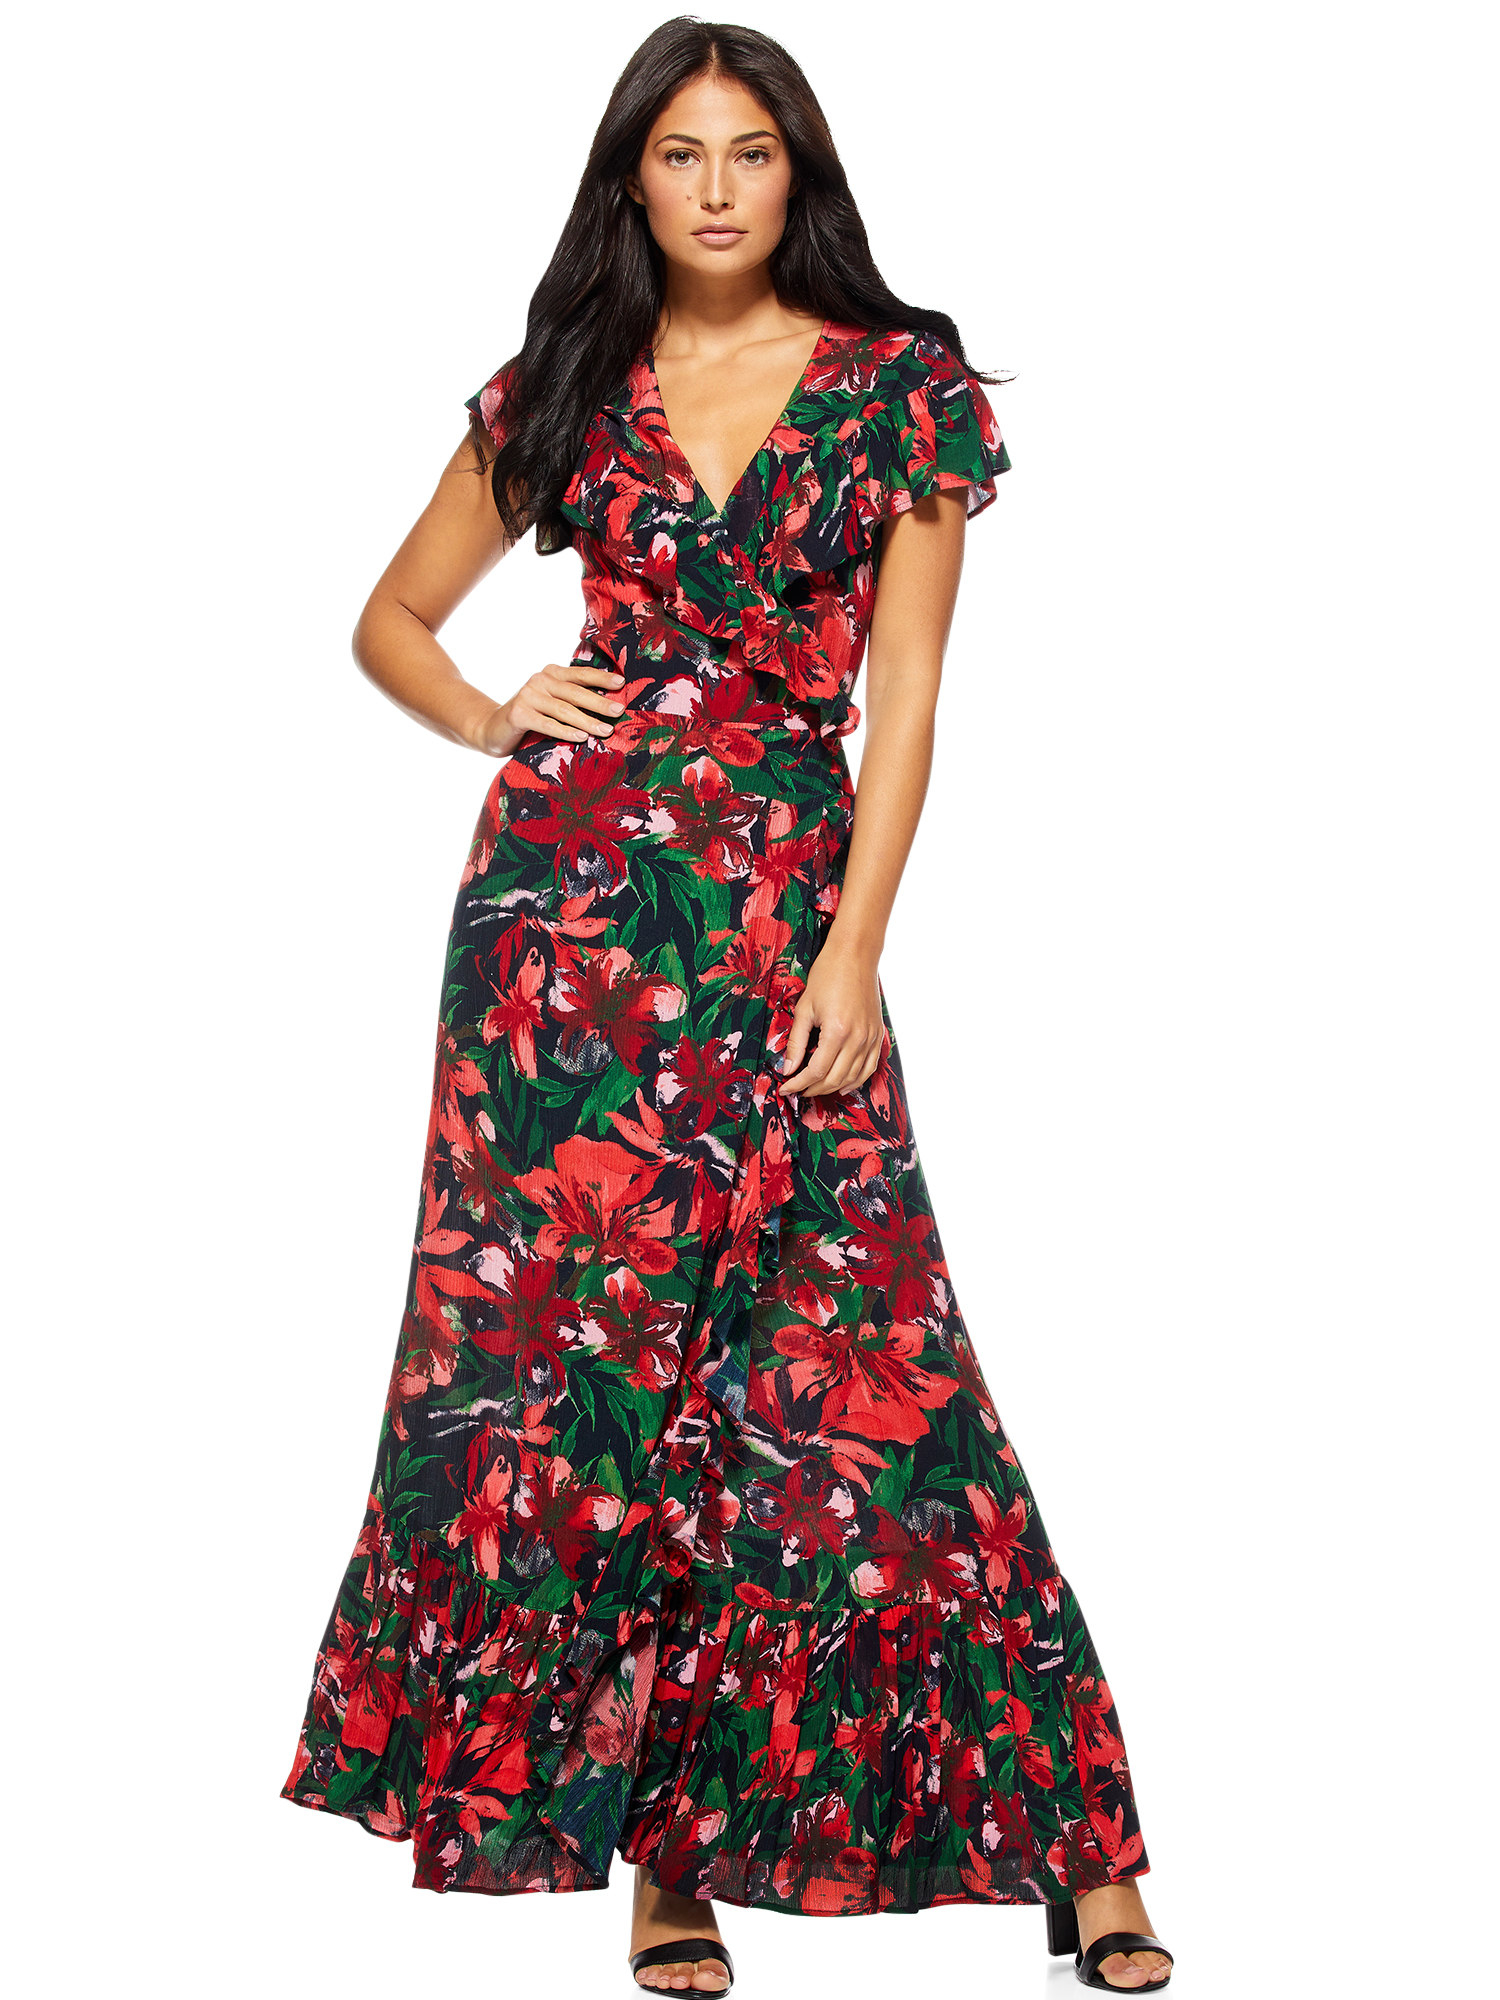 The black, red, and green maxi dress